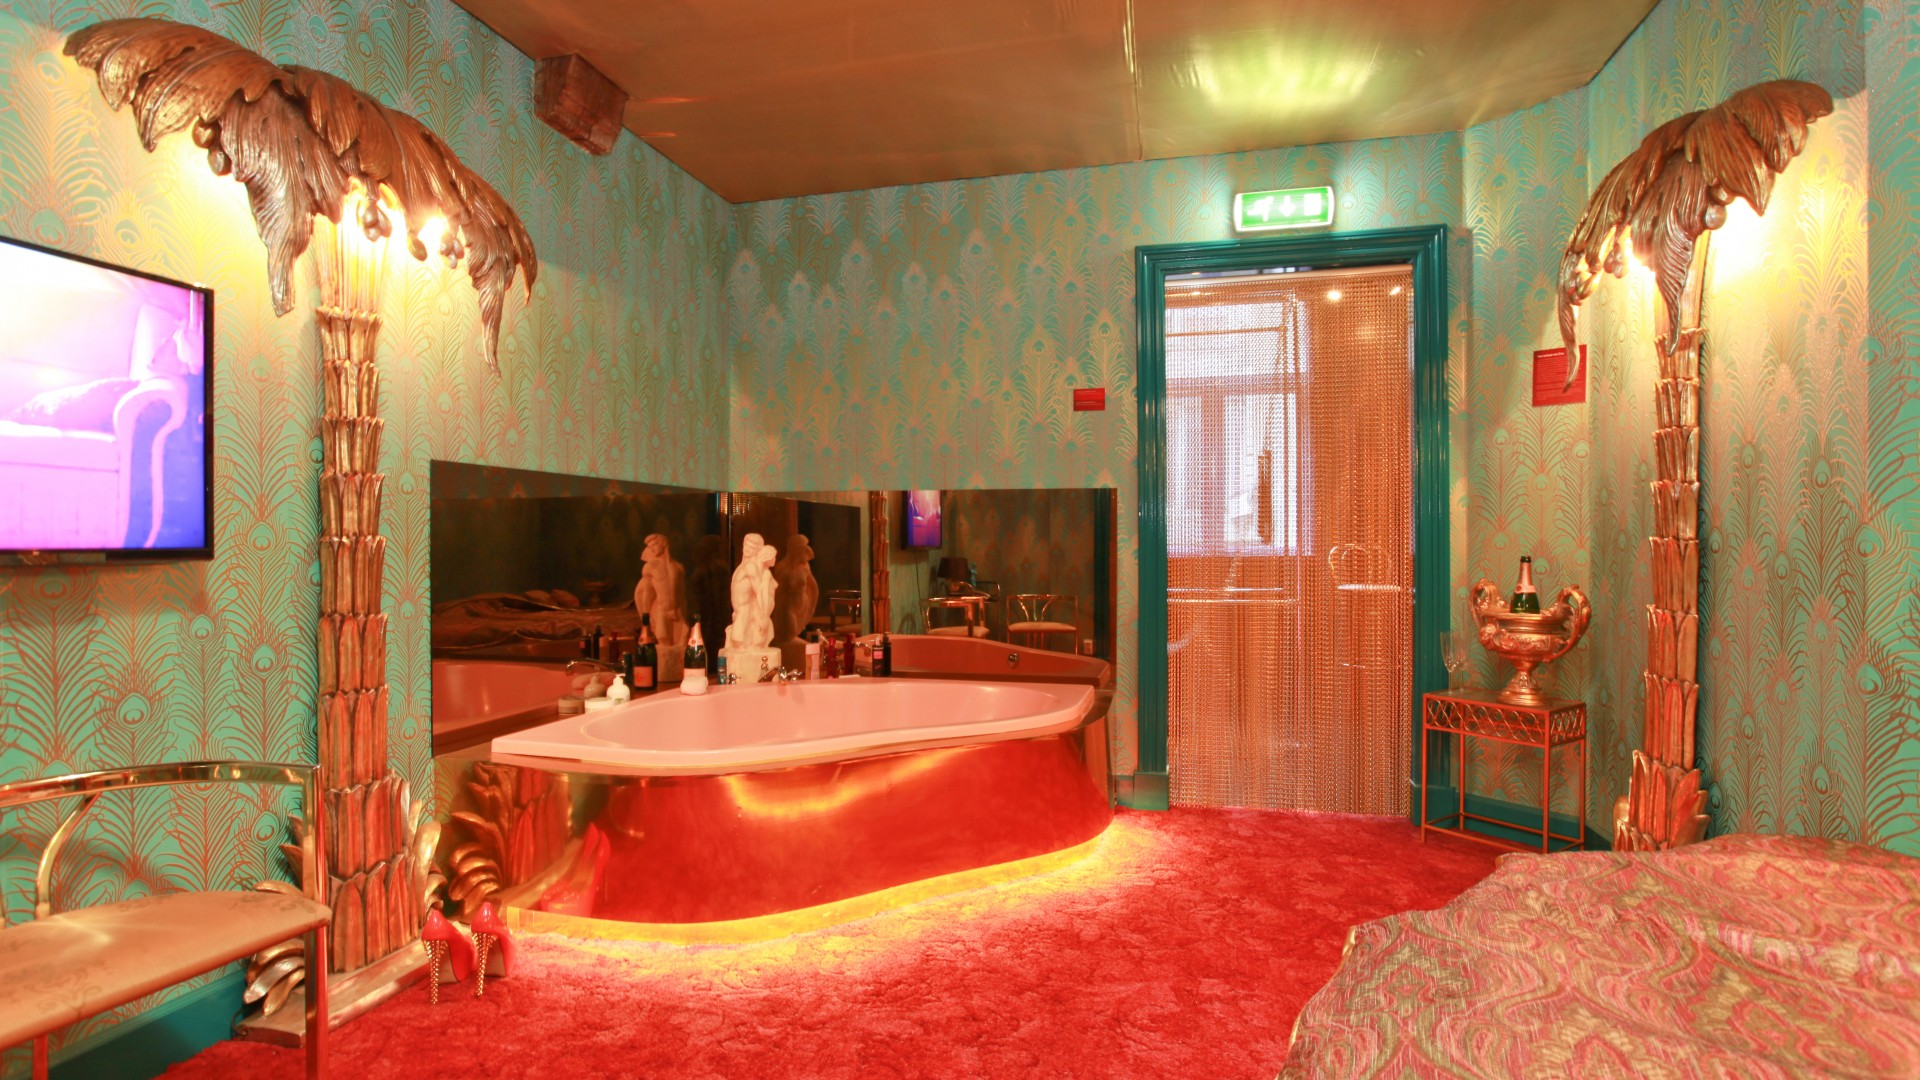 Red Light Secrets MuseumRed Light Secrets Museum   Amsterdam   MyCityHighlight. Red Light In Bathroom Hotel. Home Design Ideas